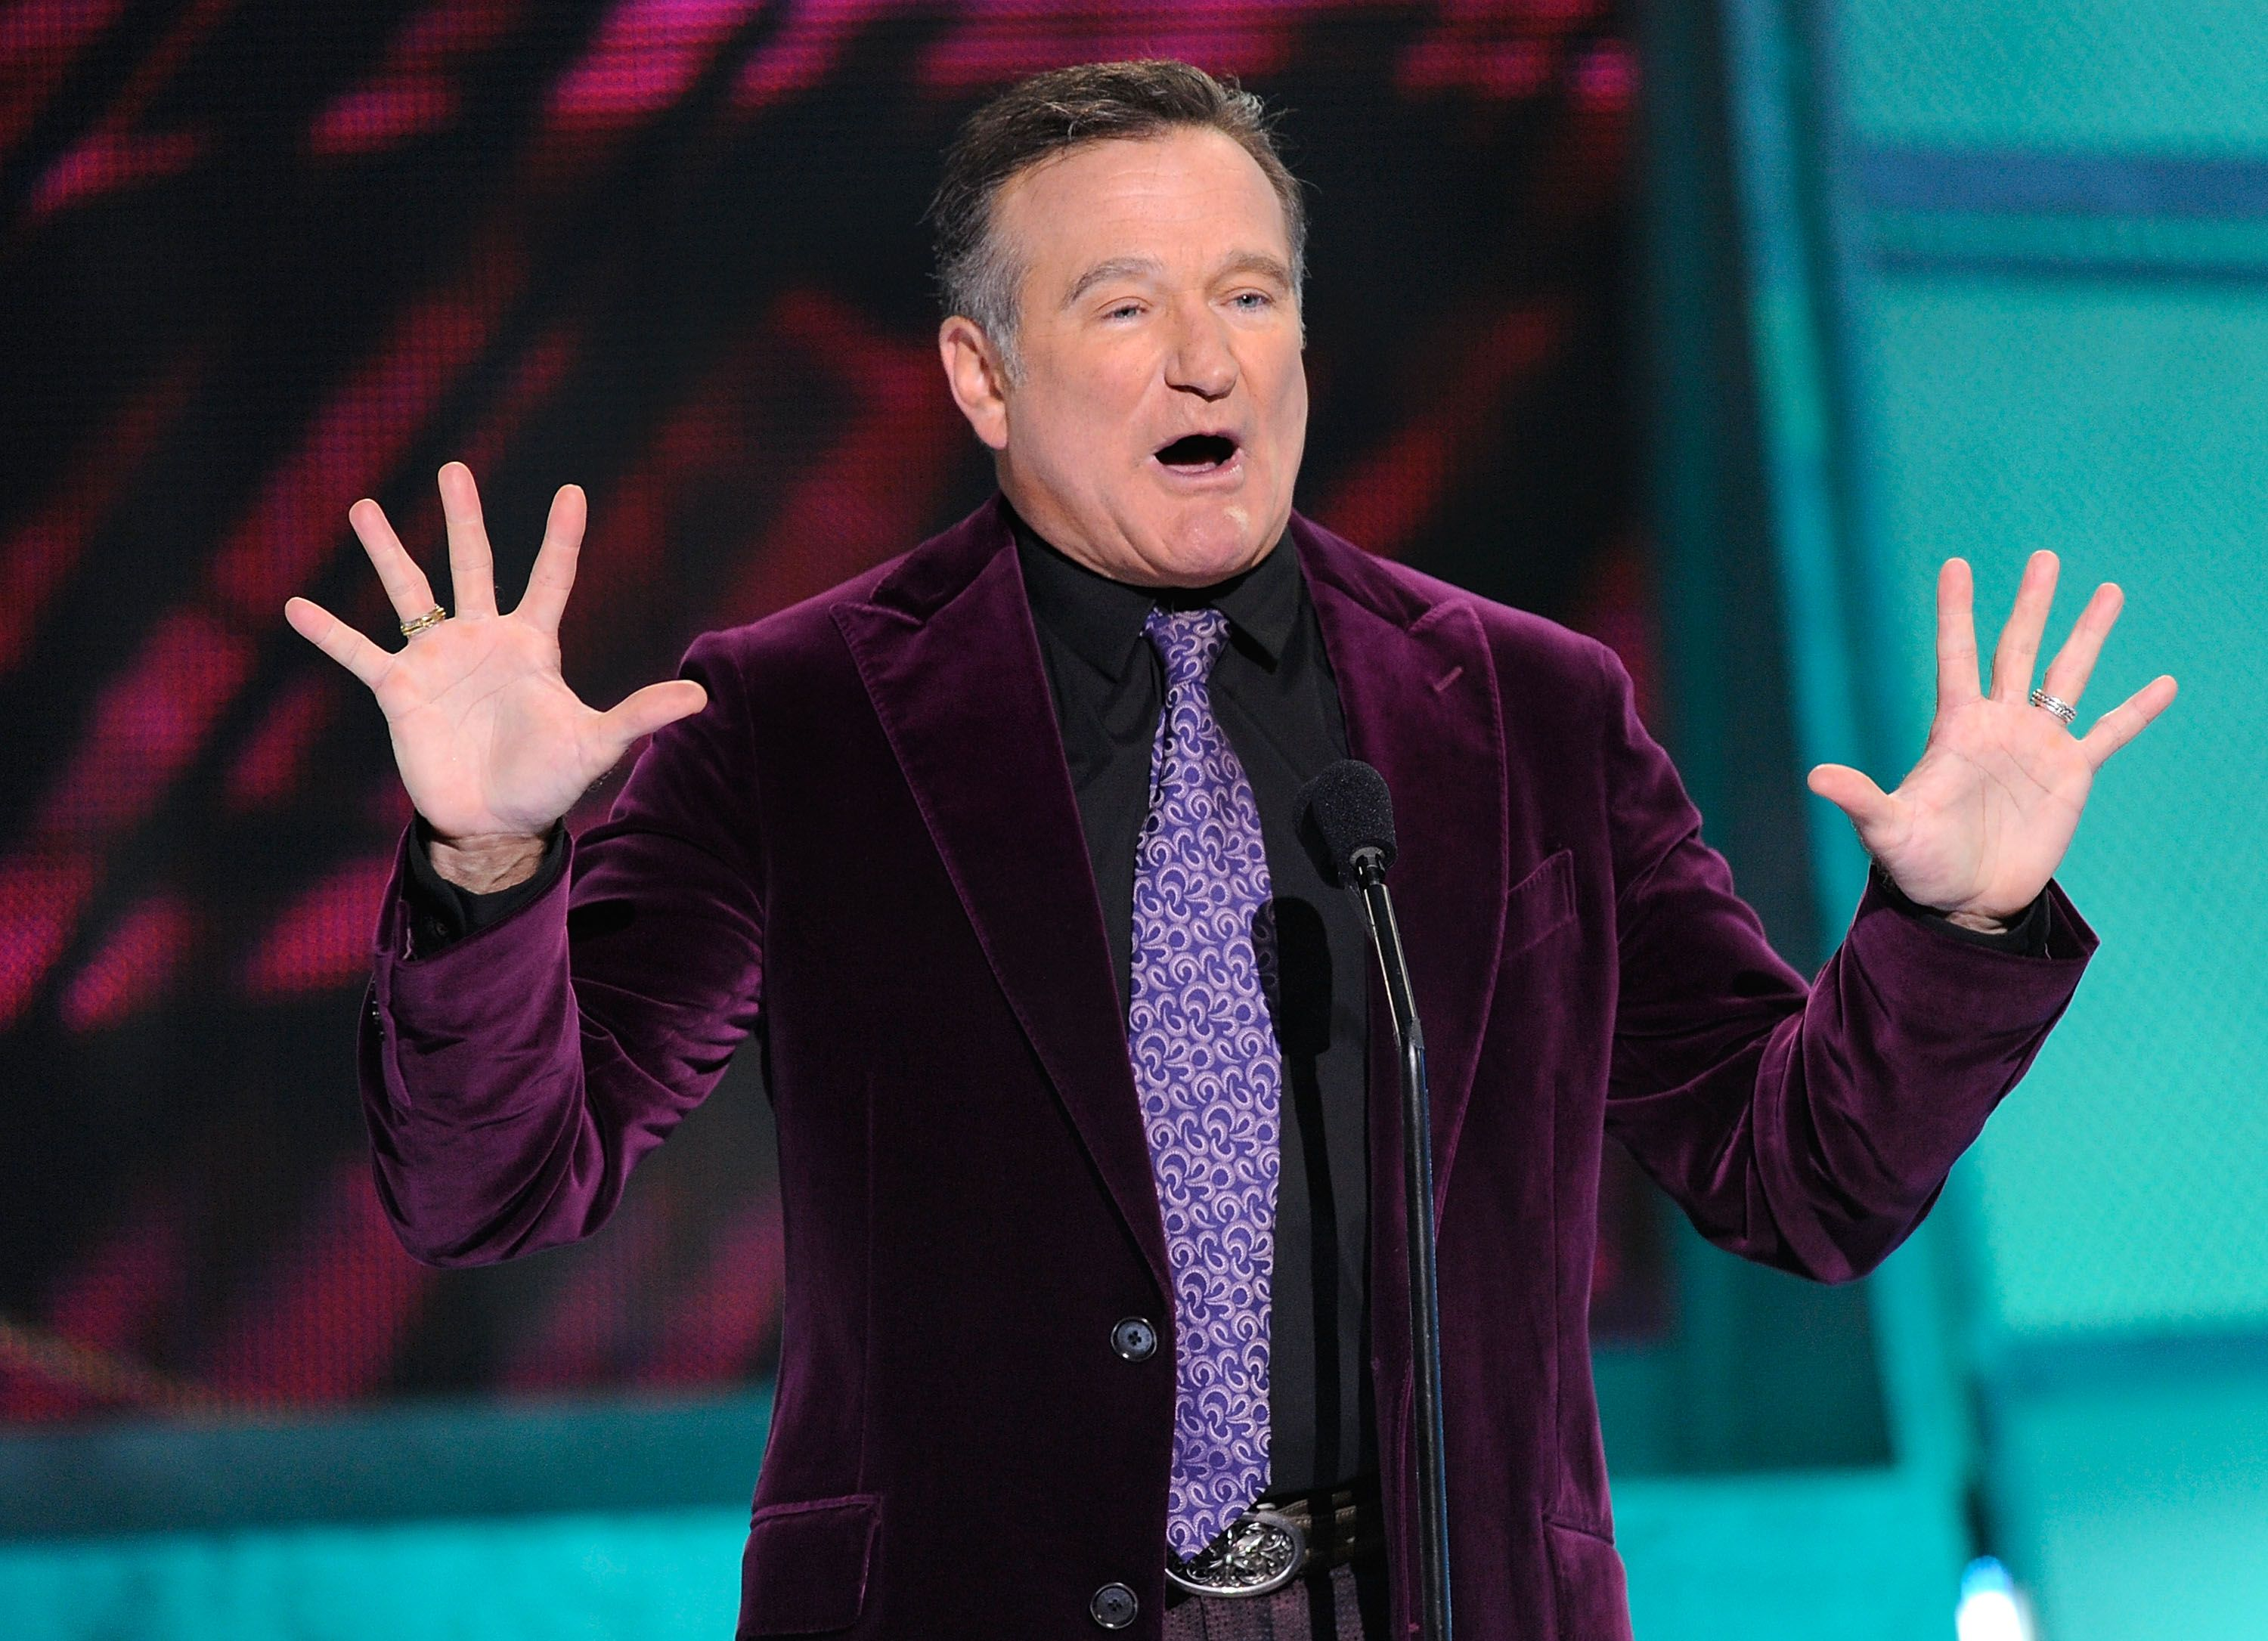 Presenter Robin Williams speaks at the 35th Annual People's Choice Awards held at the Shrine Auditorium on January 7, 2009 | Photo: Getty Images